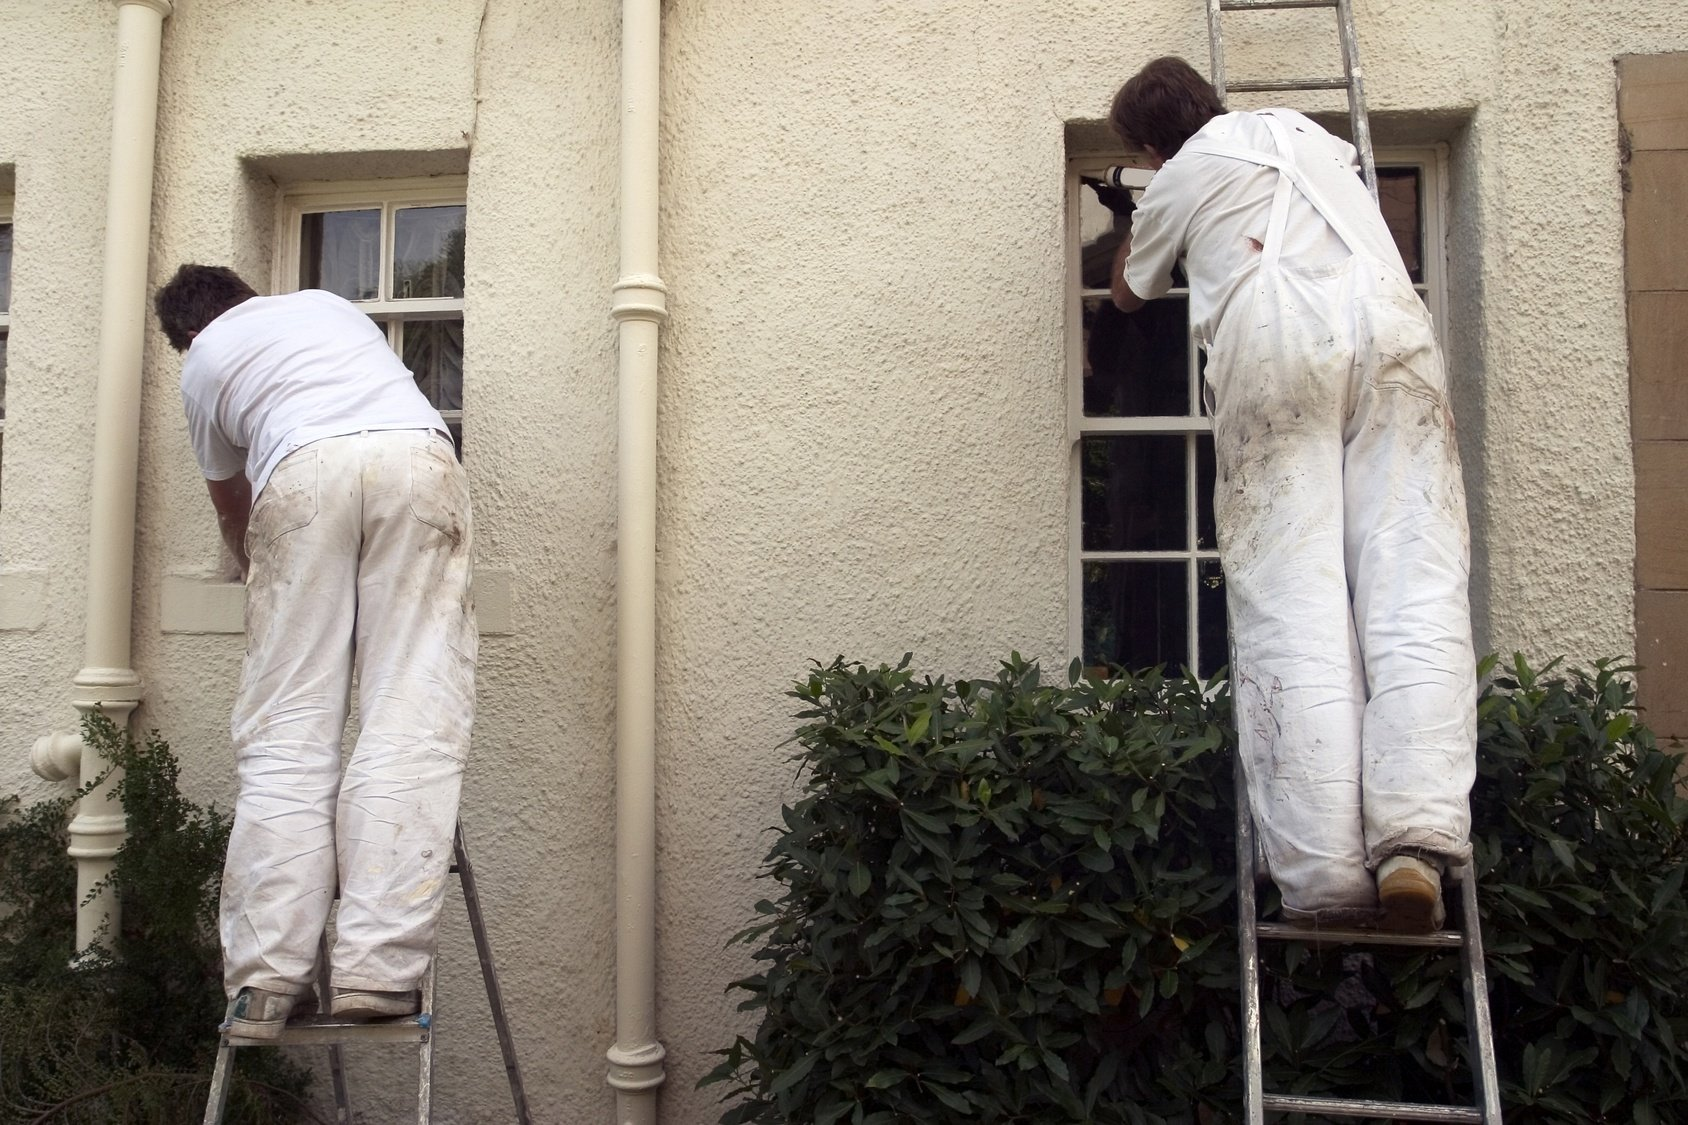 Two Men Painting a Home's Exterior